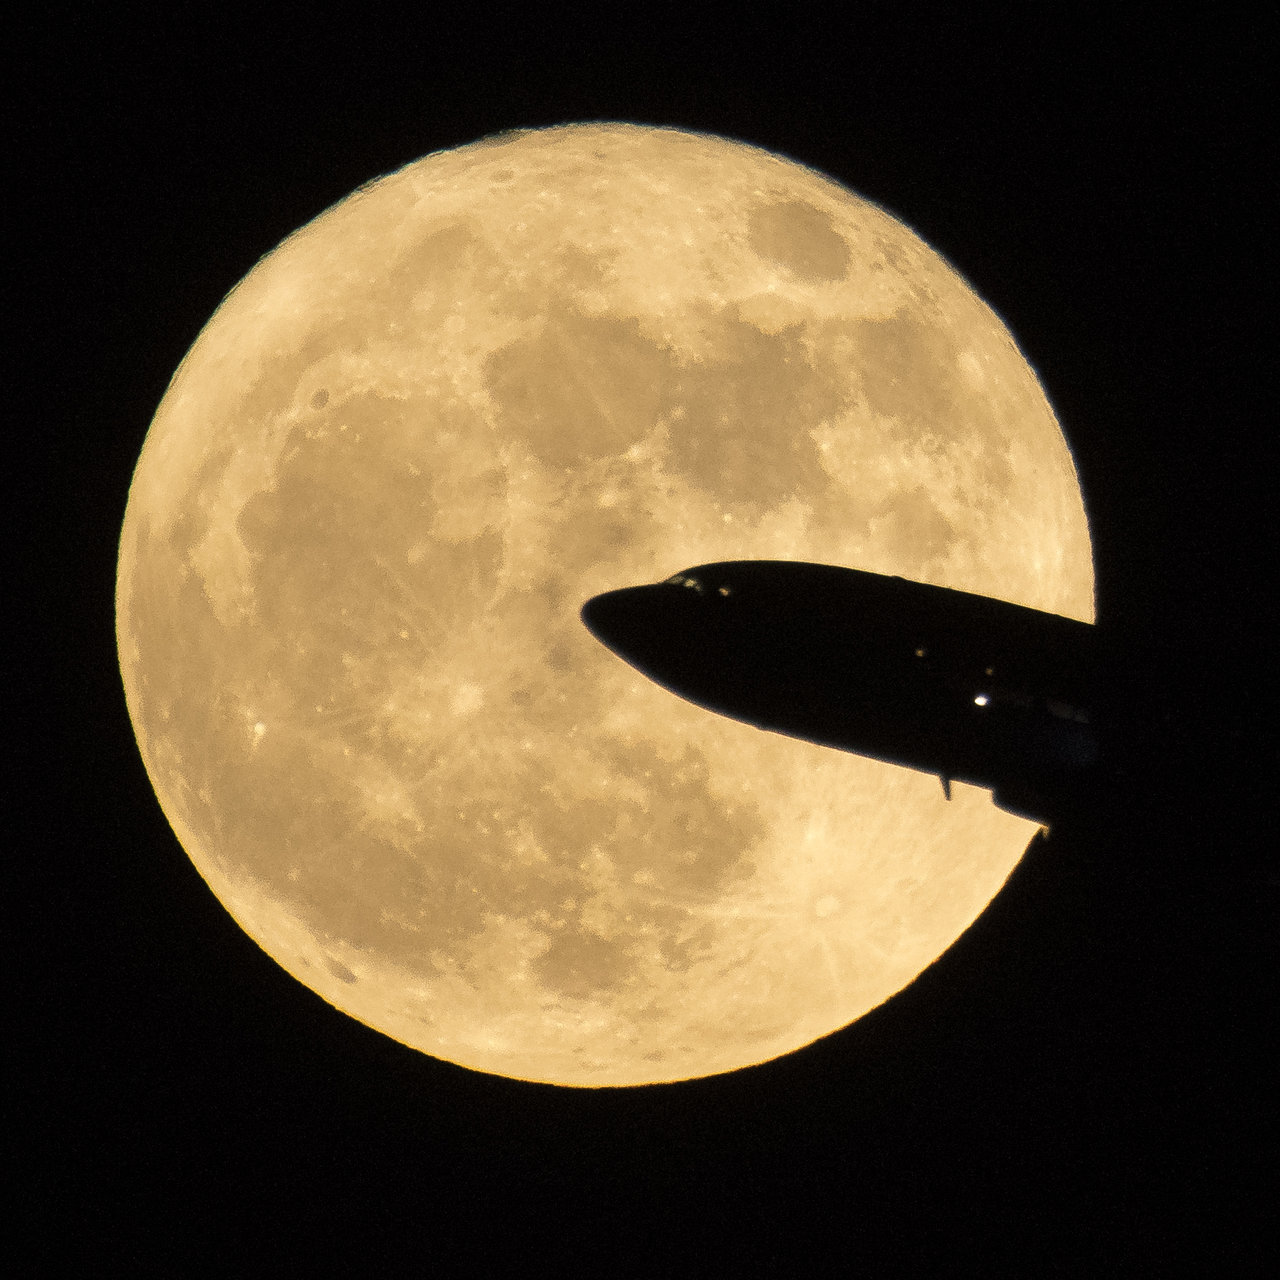 full moon with silhouette of airliner in foreground